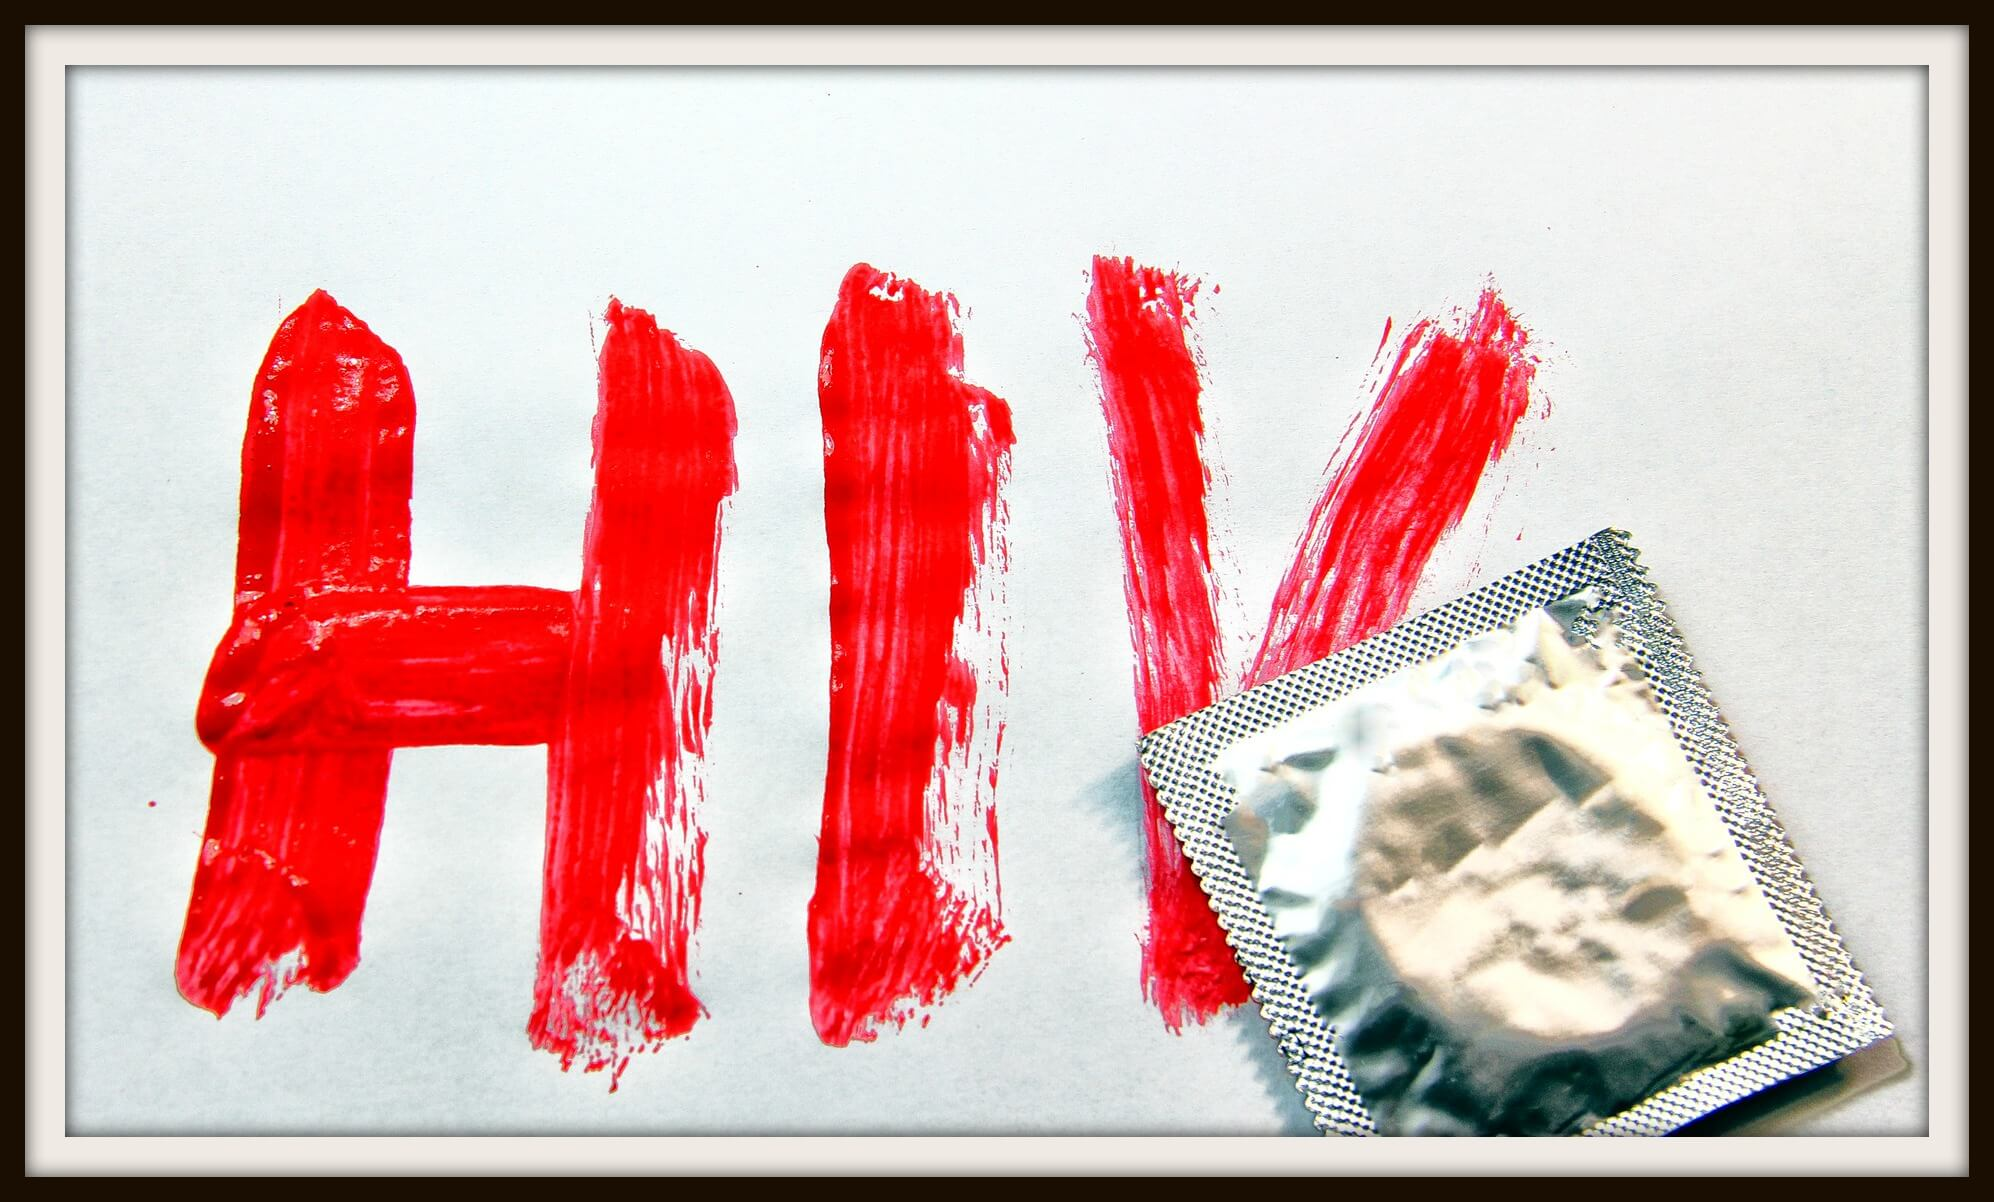 Ask Rene: Do I Tell My Friend Her Son Has HIV?